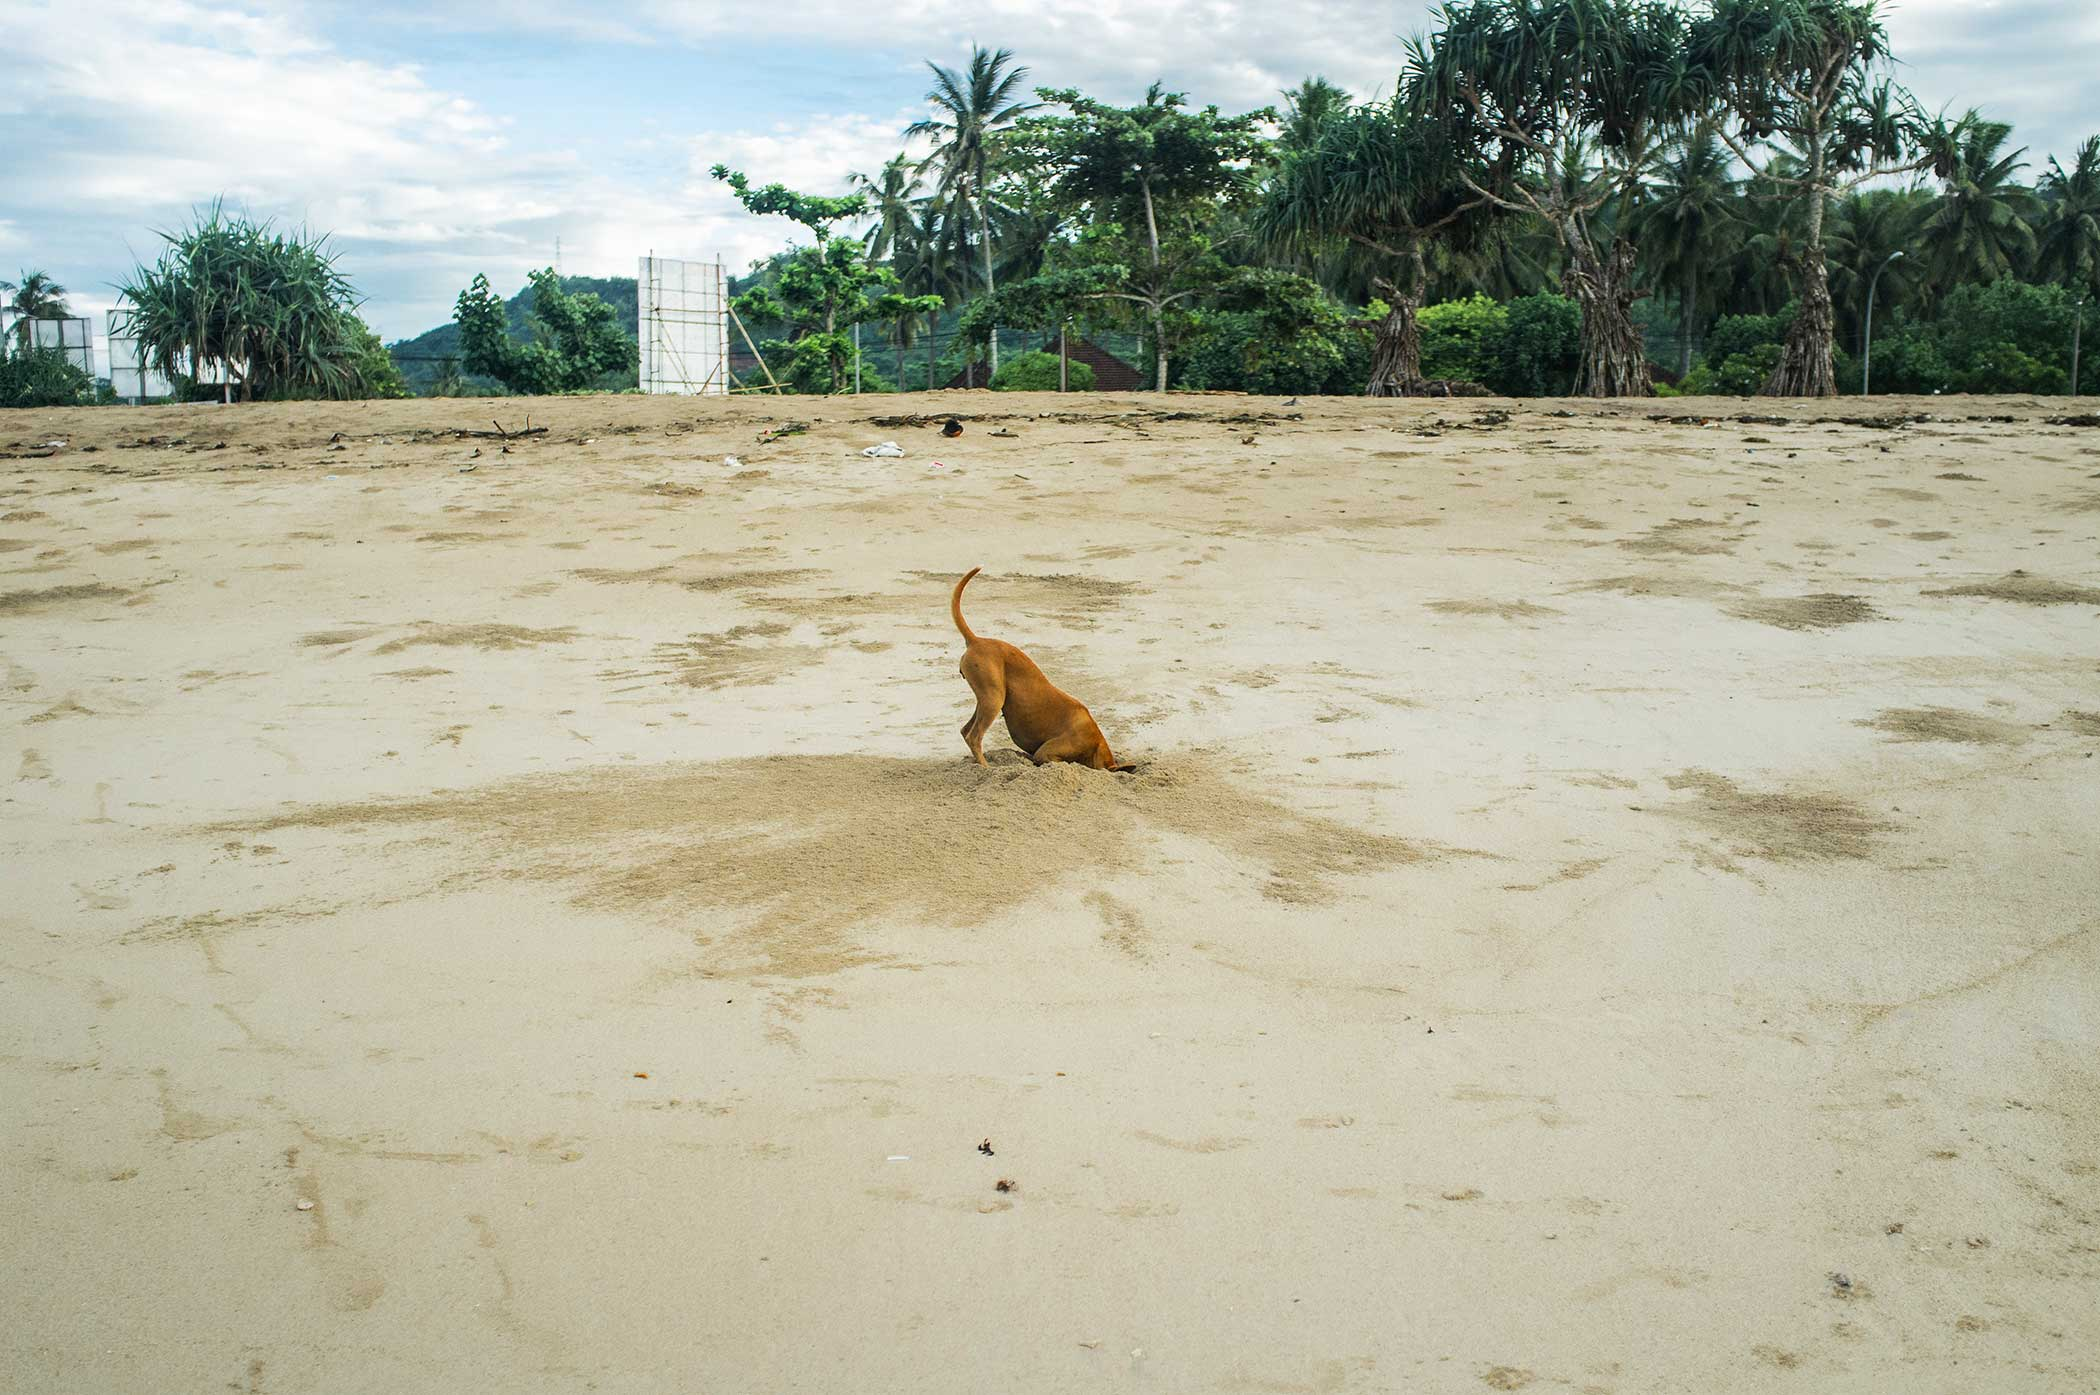 Dog in search of crab.